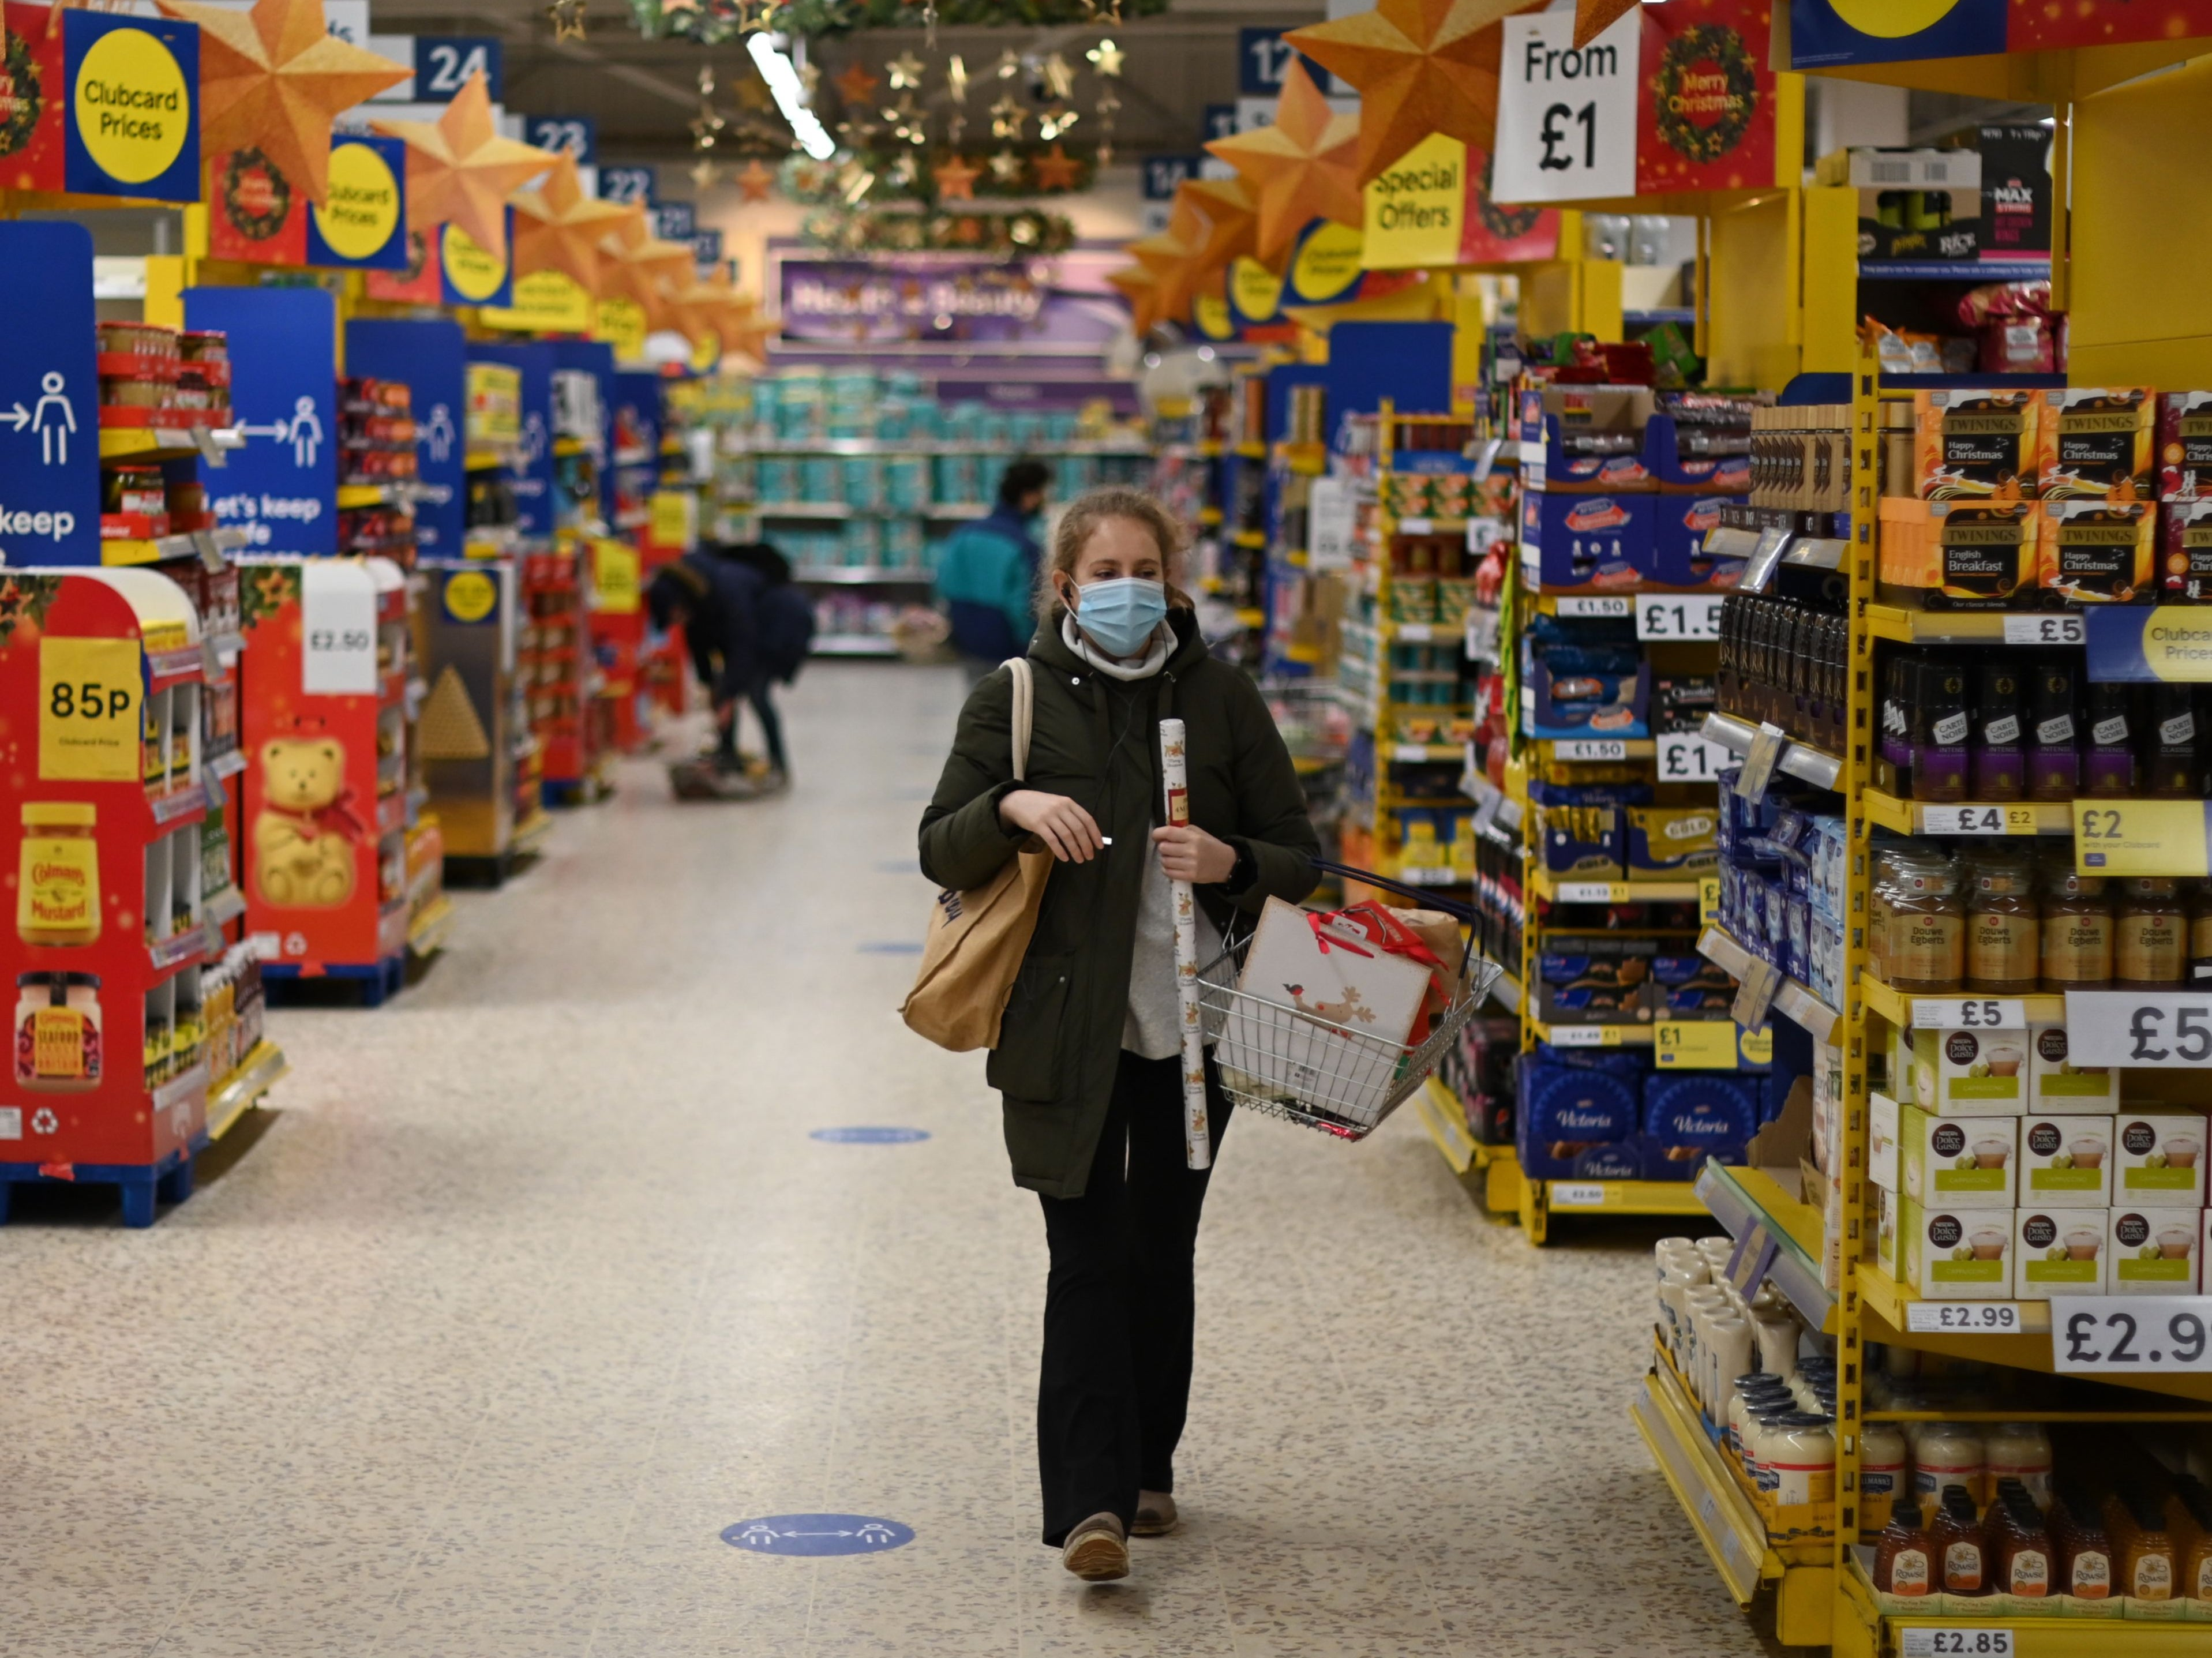 Wearing a mask in the supermarket helps me hide my unhealthy habits